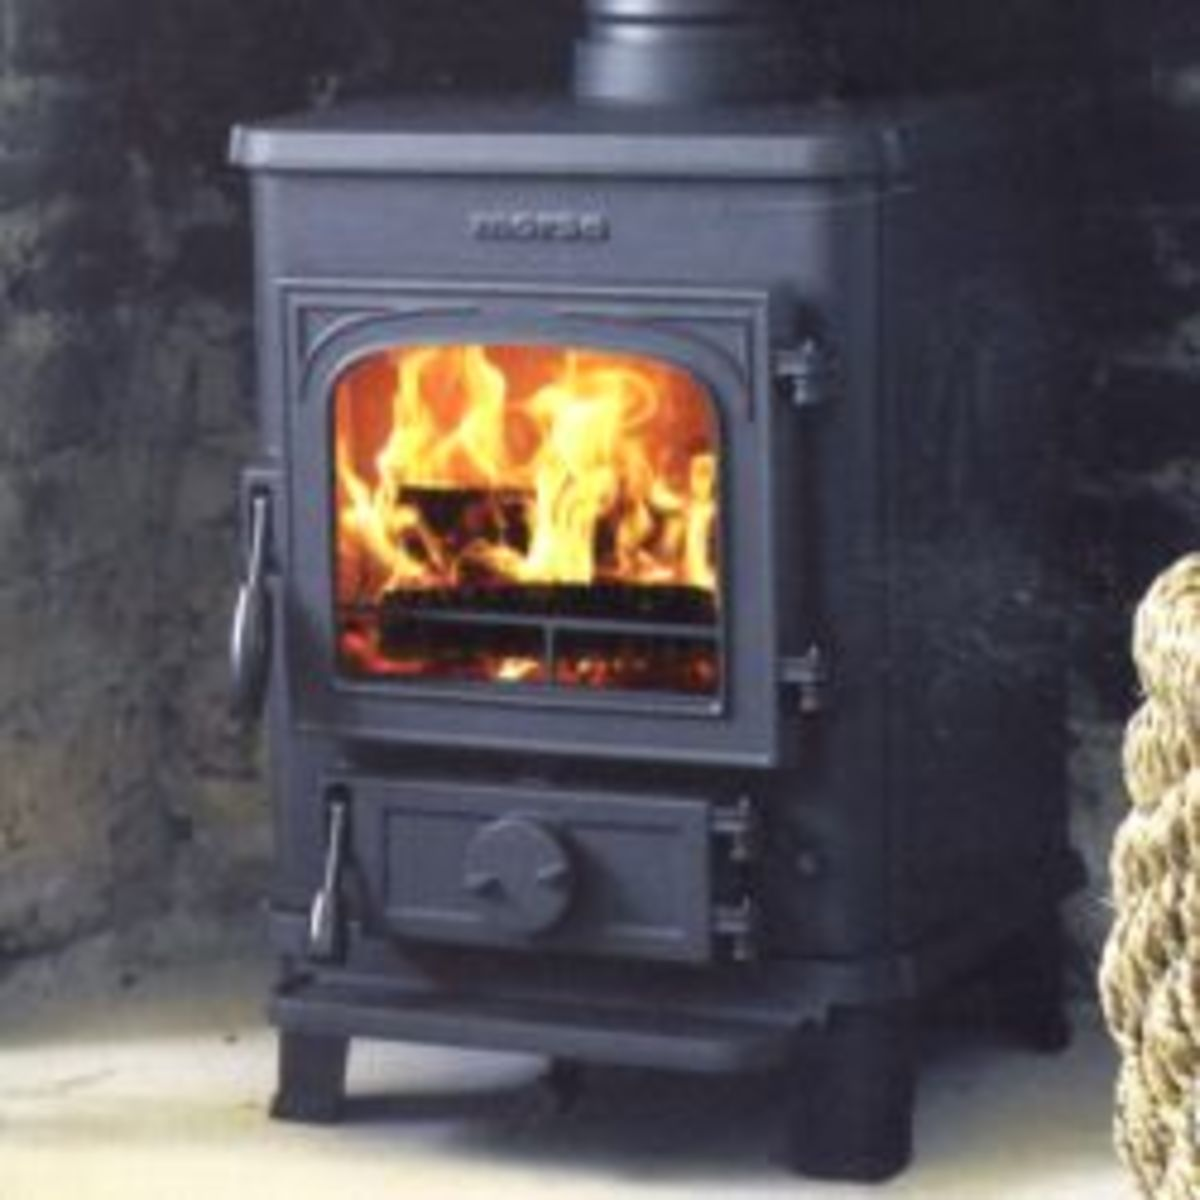 How To Own a Wood Burning Stove and Why Burning Logs Makes Sense!